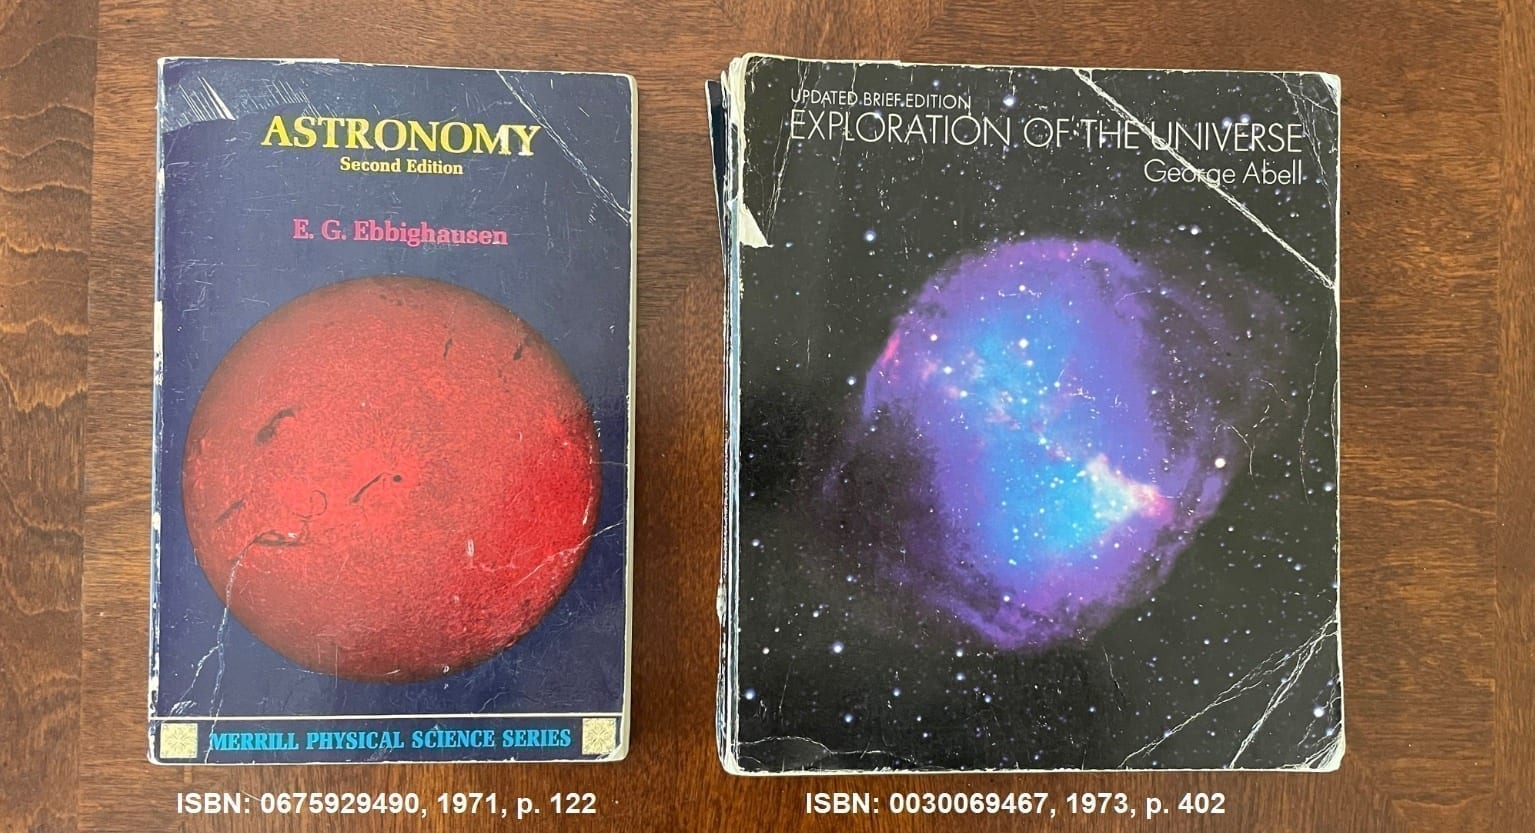 Astronomy textbooks from 1974